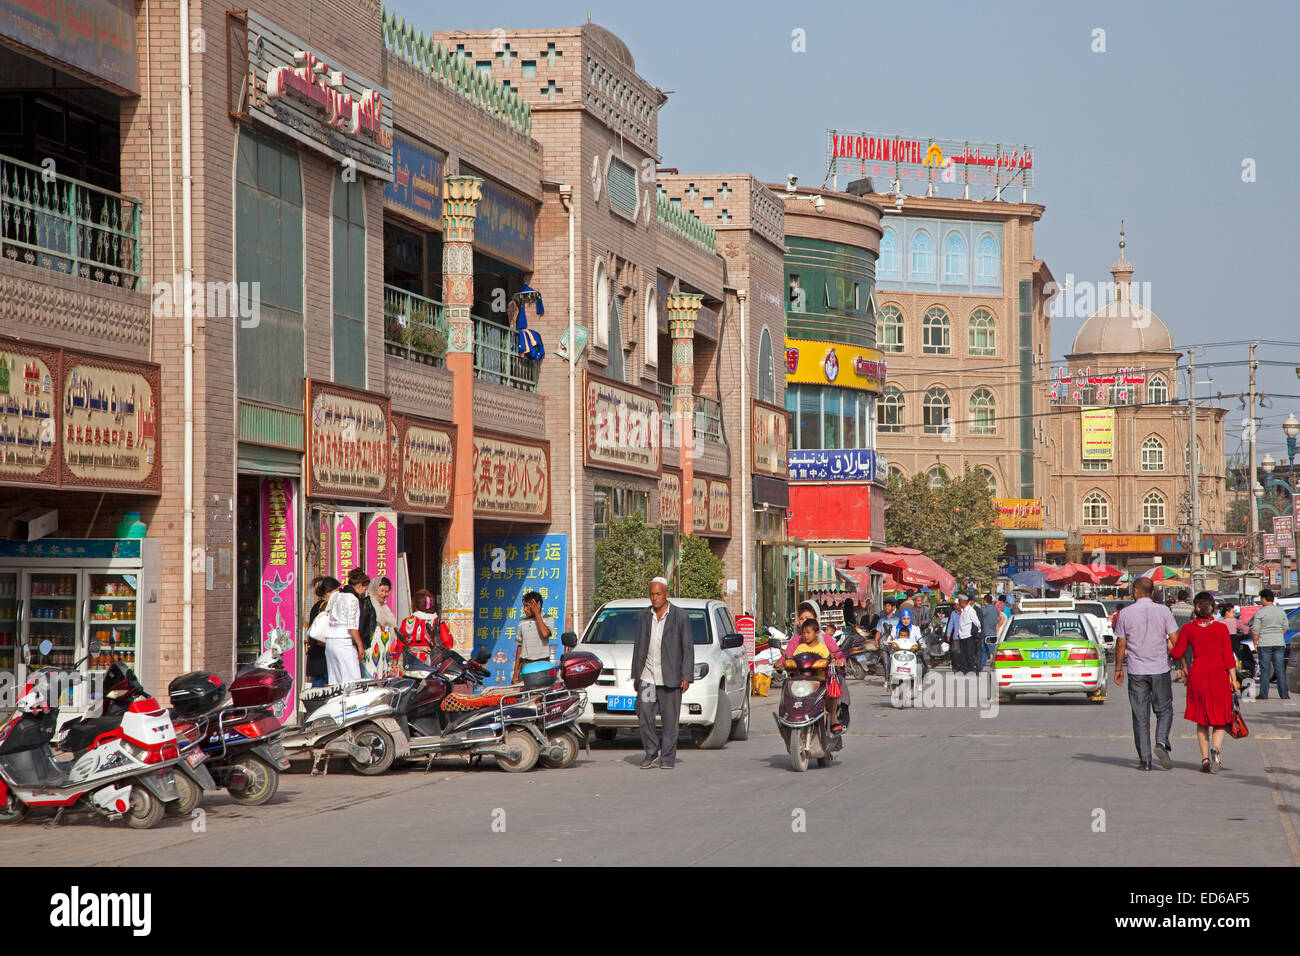 Scooters in busy shopping street in the city Kashgar / Kashi, Xinjiang Province, China - Stock Image